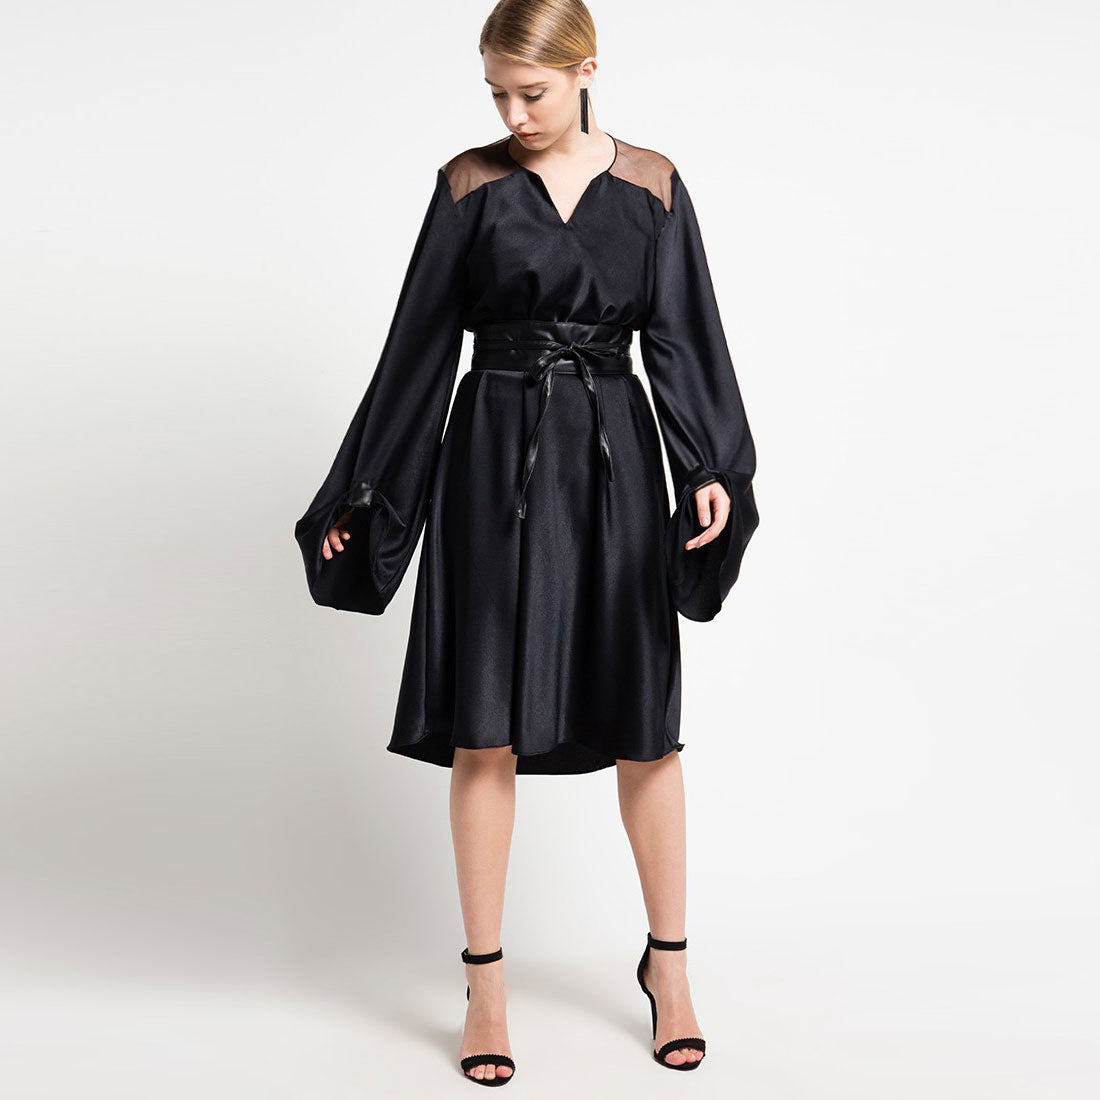 Morocco Long Sleeve Dress Black On Sateen Silk-2Madison Avenue Indonesia